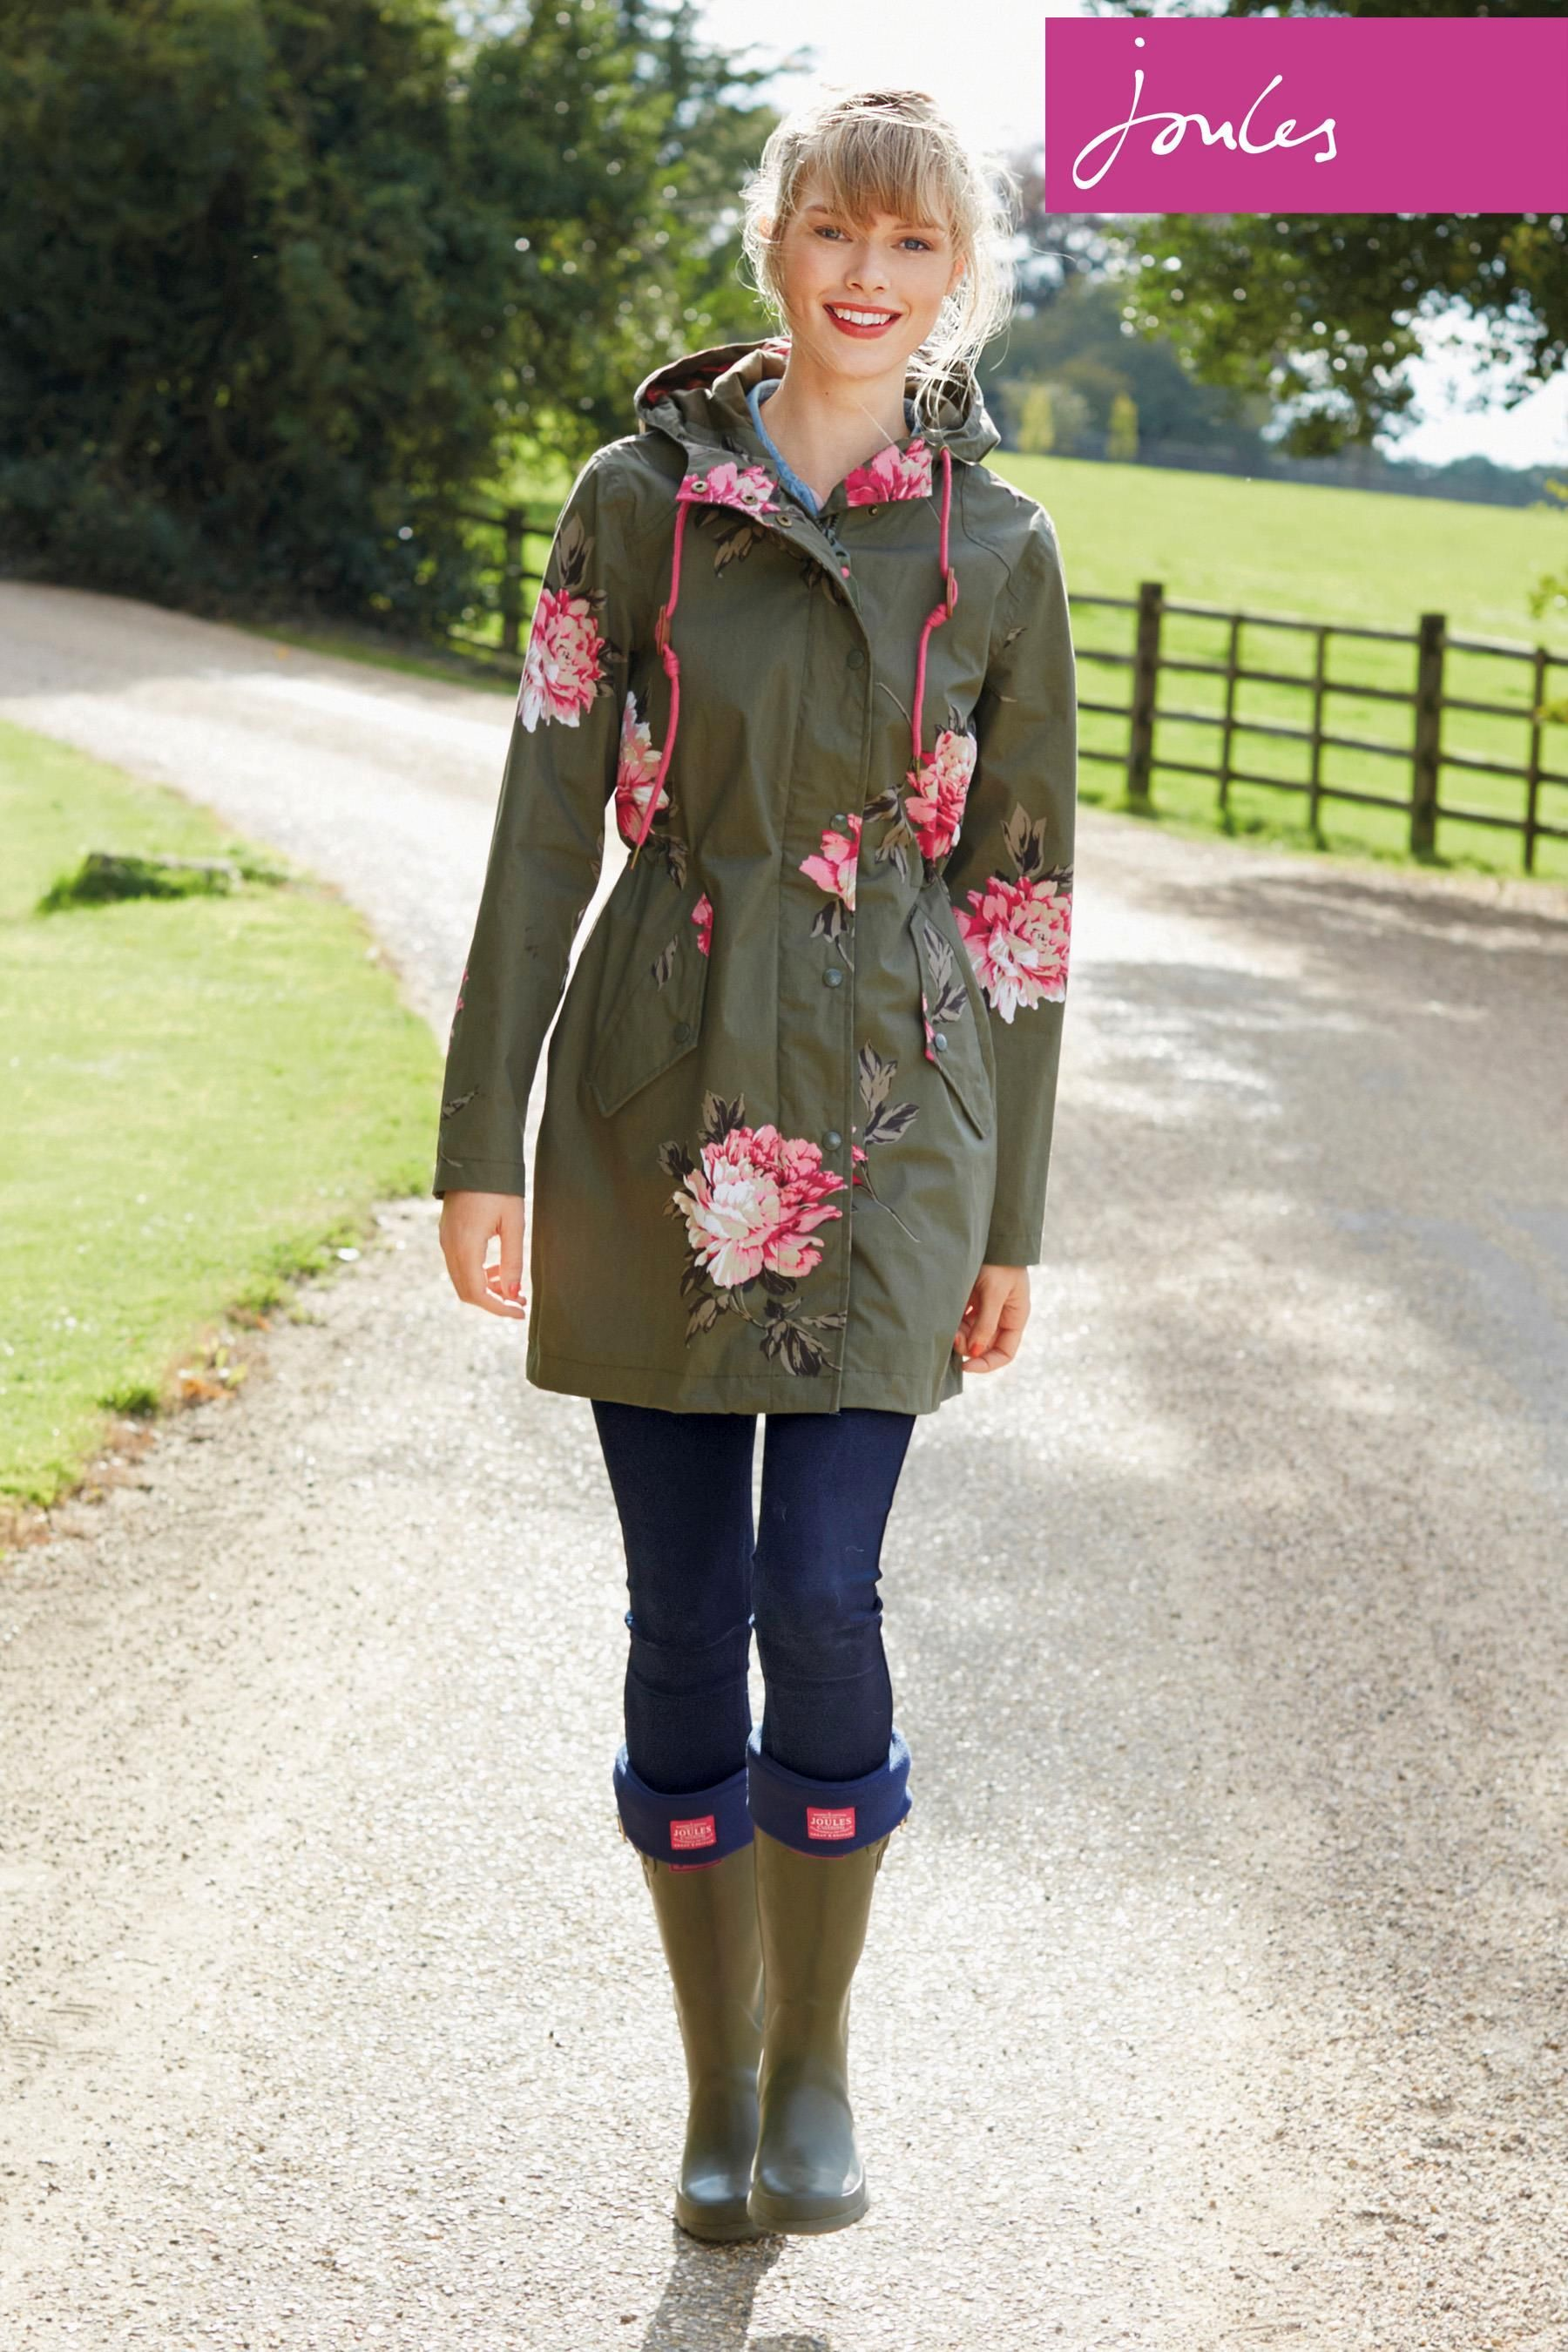 Joules Storm Waterproof Fl Parka For Rainy Days